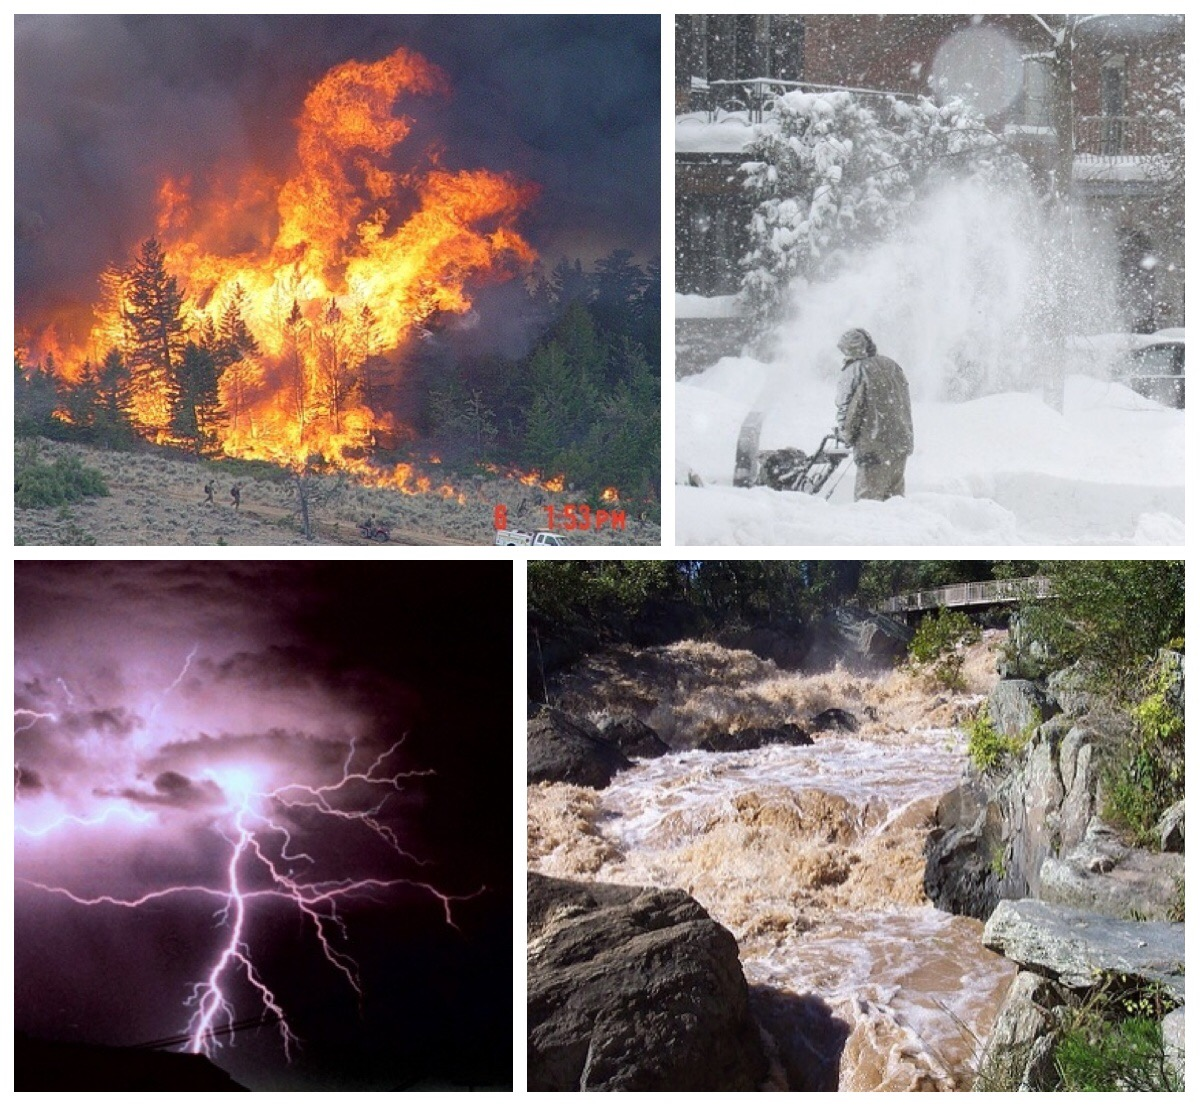 <strong>From floods to fires</strong>, increasingly volatile weather endangers lives around the globe. Margaret Lawson is developing a system to help scientists comb through the massive amounts of data it takes to predict extreme weather events and help keep people safe. Courtesy NOAA.